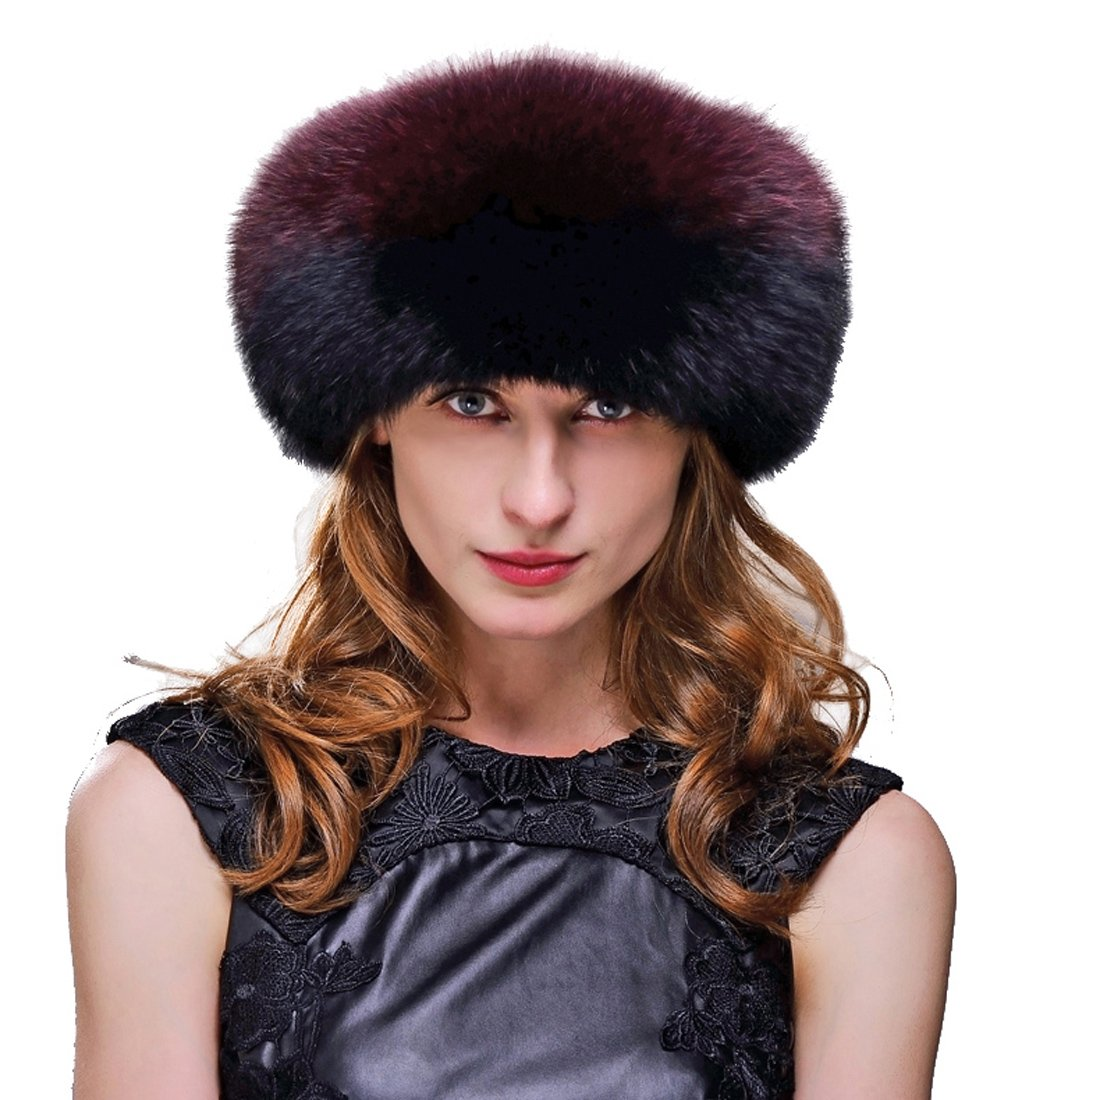 URSFUR Fox Fur Roller Hat with Leather Top and Tails (One Size Fits All, Black & Red) by URSFUR (Image #1)